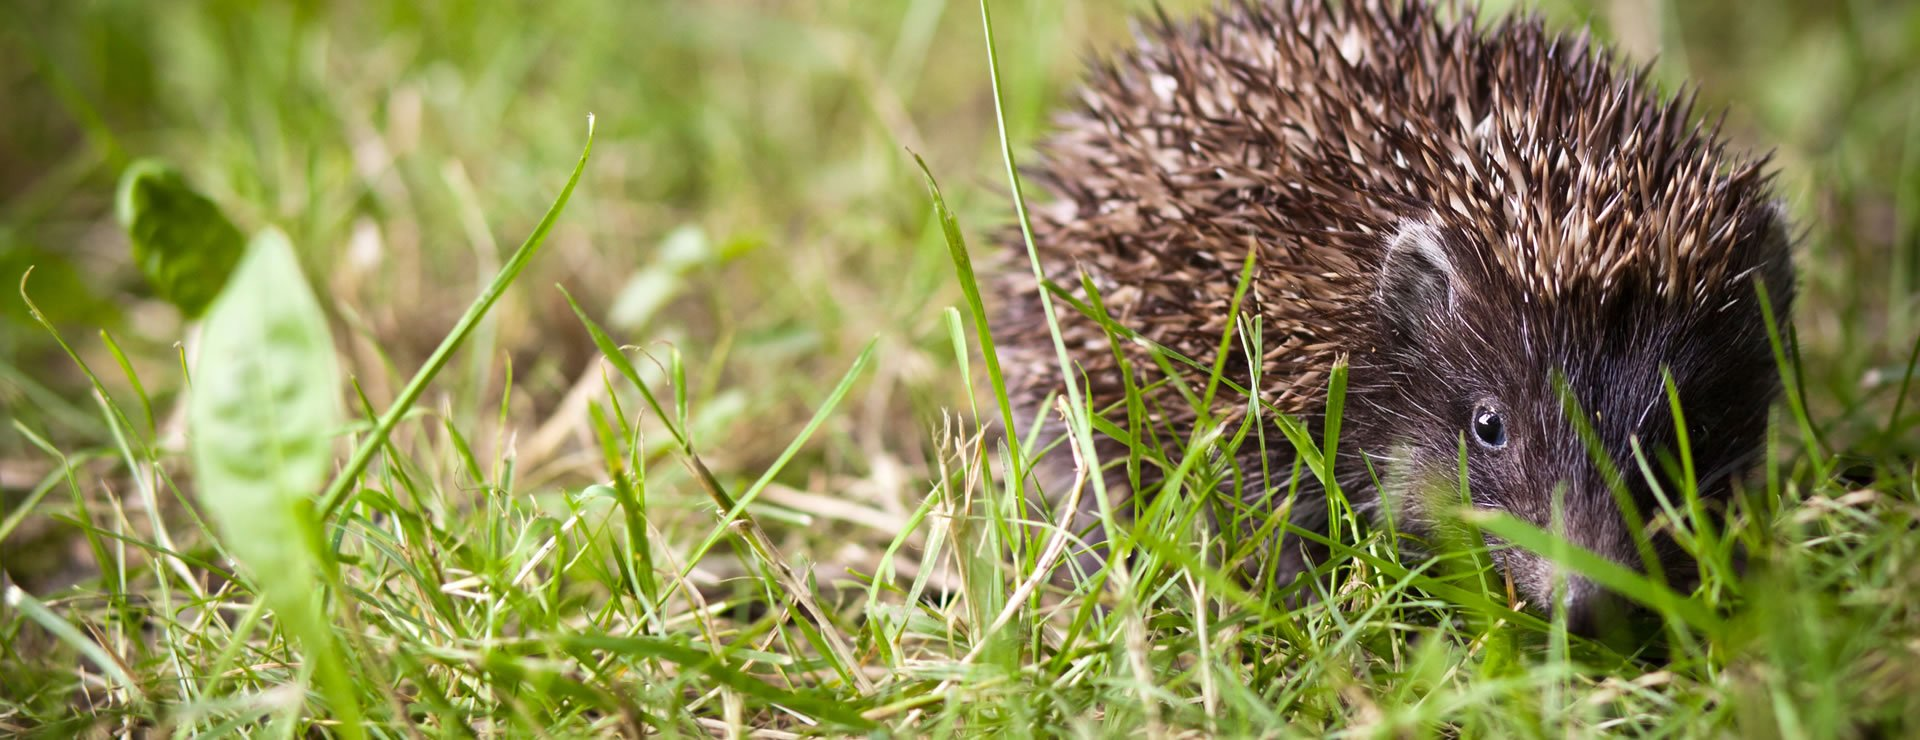 Hedges and Hedgehogs (Part 2 of 3)